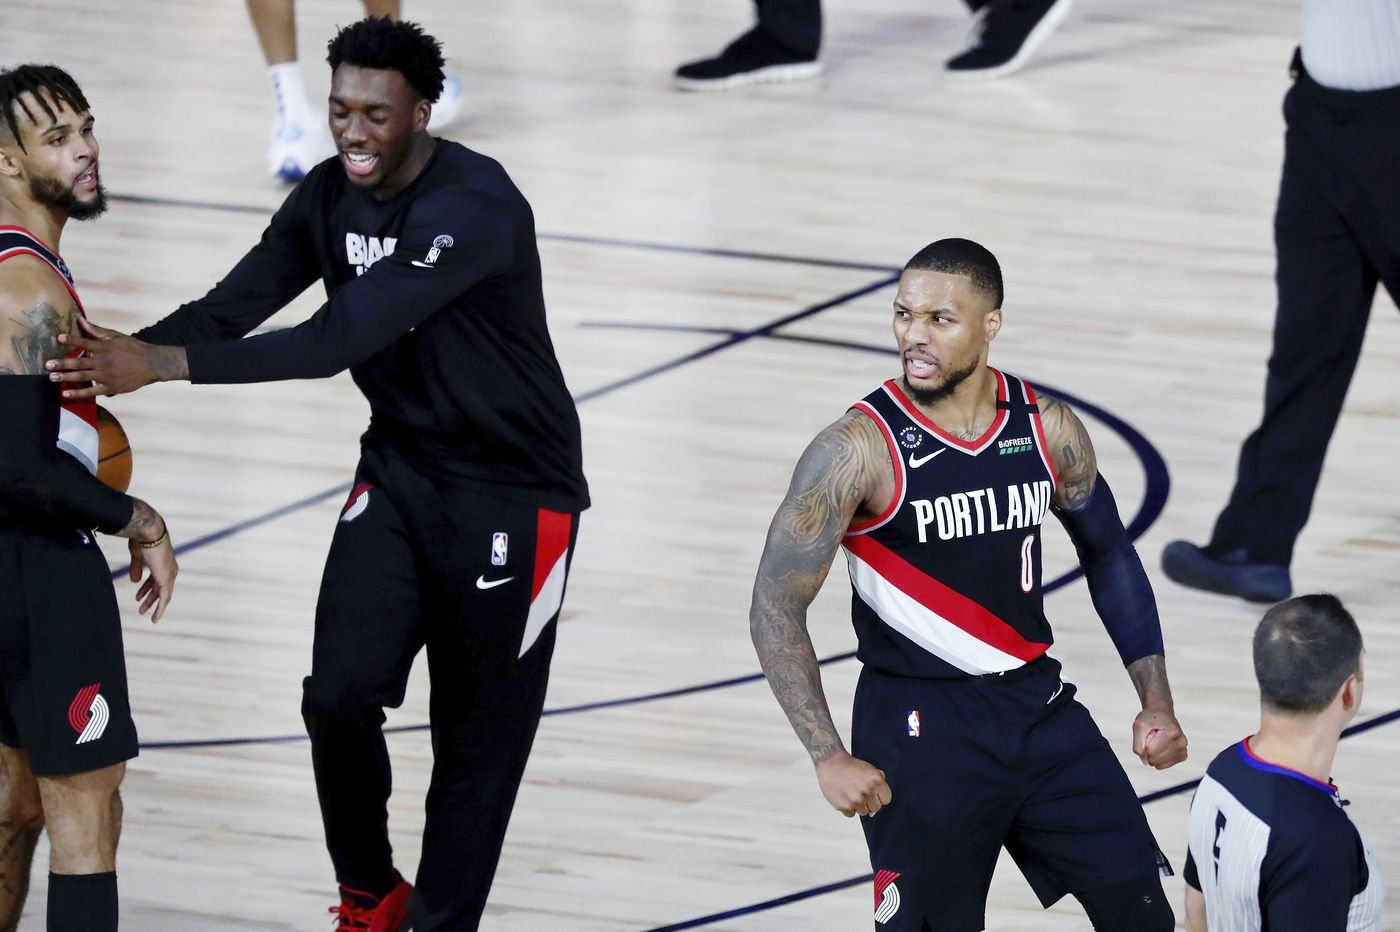 Damian Lillard joins Wilt Chamberlain in the history books, Deion Sanders leaves NFL Network for Barstool, and other sports news